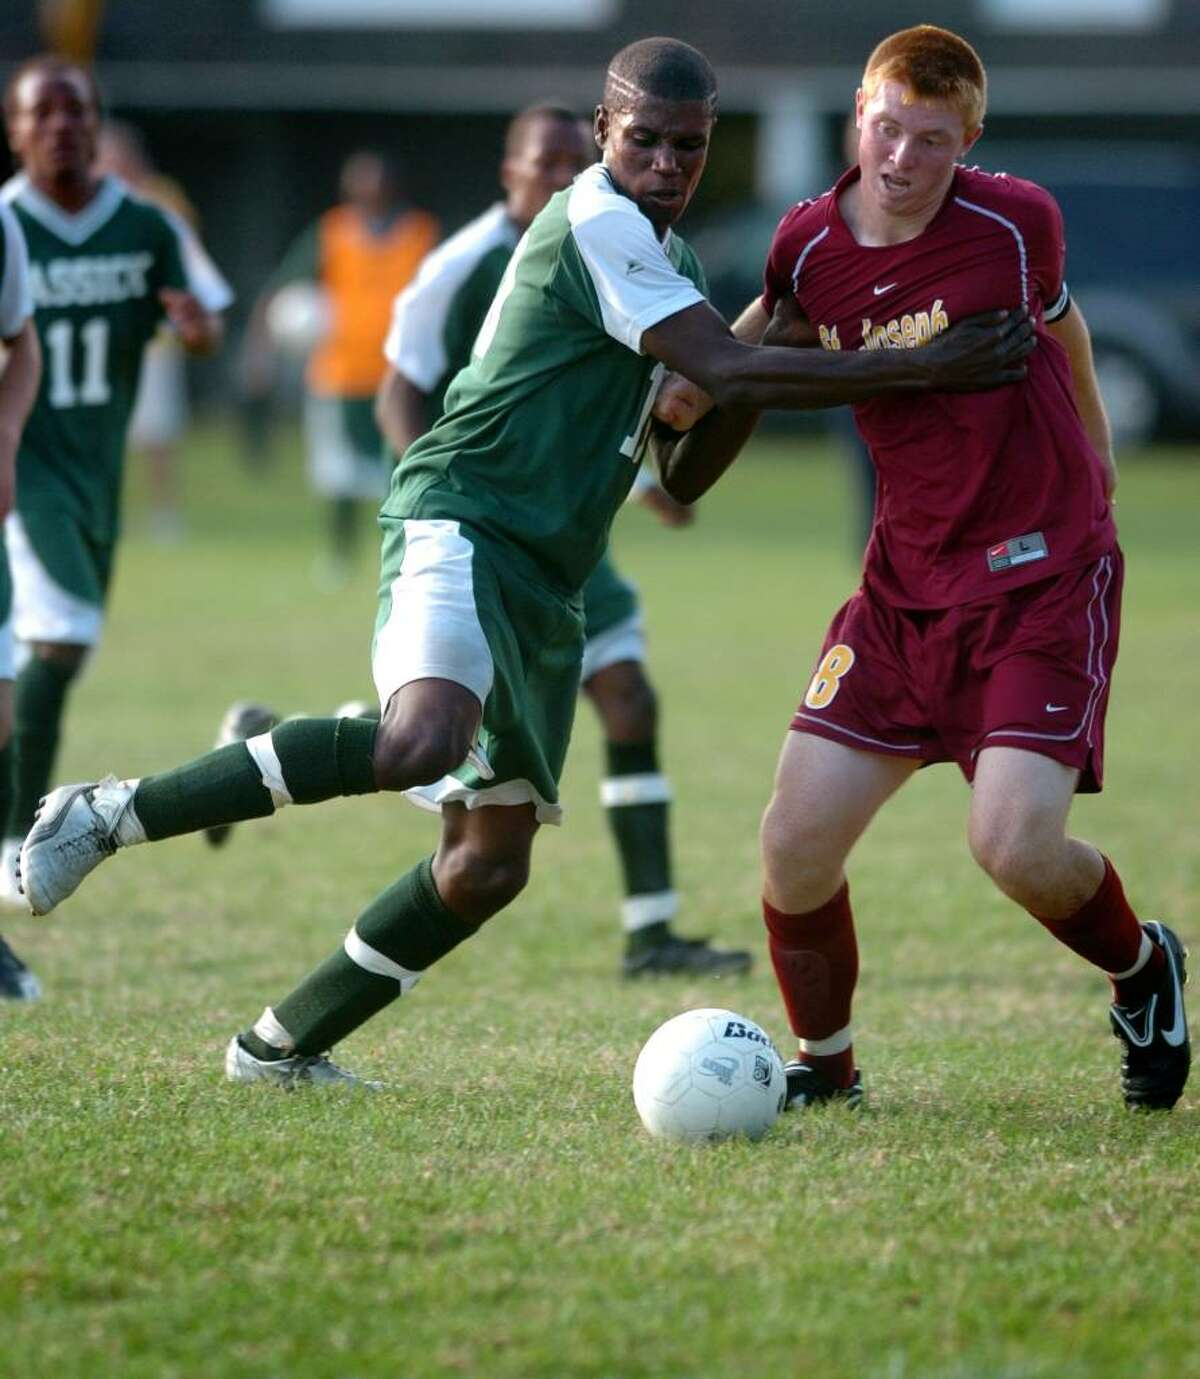 Bassick's Romaro Johnson holds back St. Joseph's Brendan Nugent as he goes to kick the ball during the first half of Wednesday's game at Seaside Park in Bridgeport, Conn.